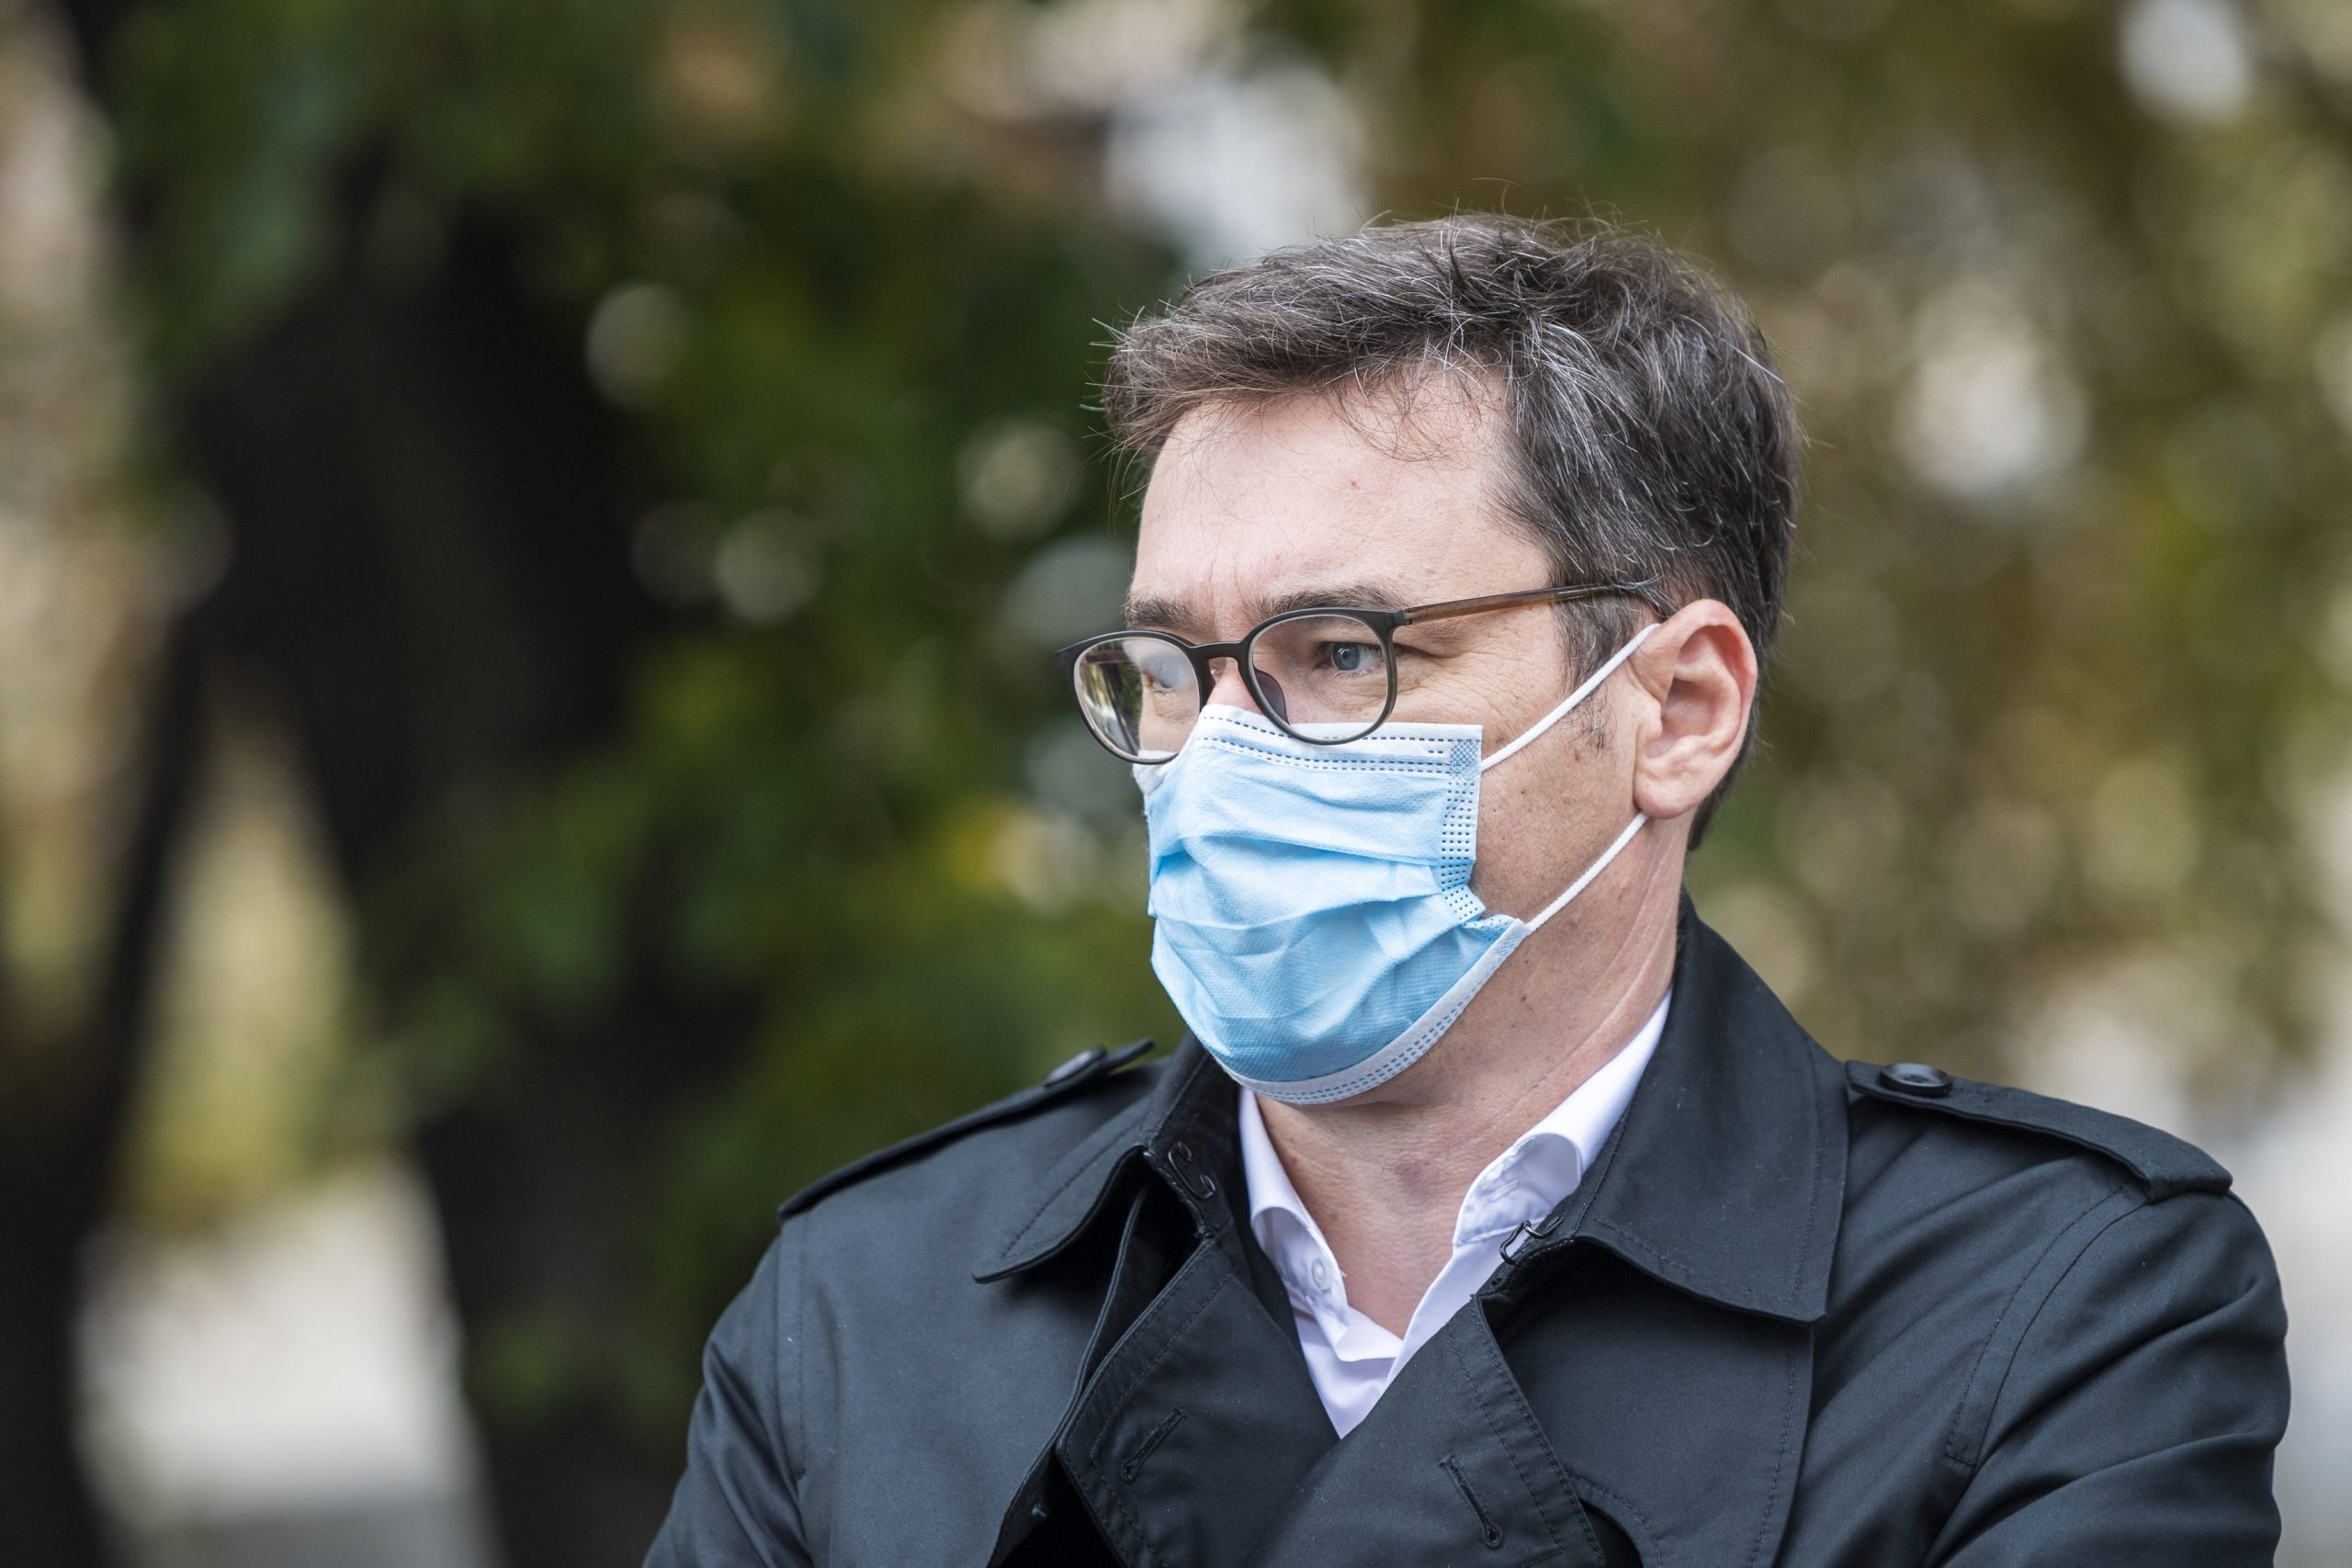 Budapest Mayor Encourages Residents to Get Vaccinated